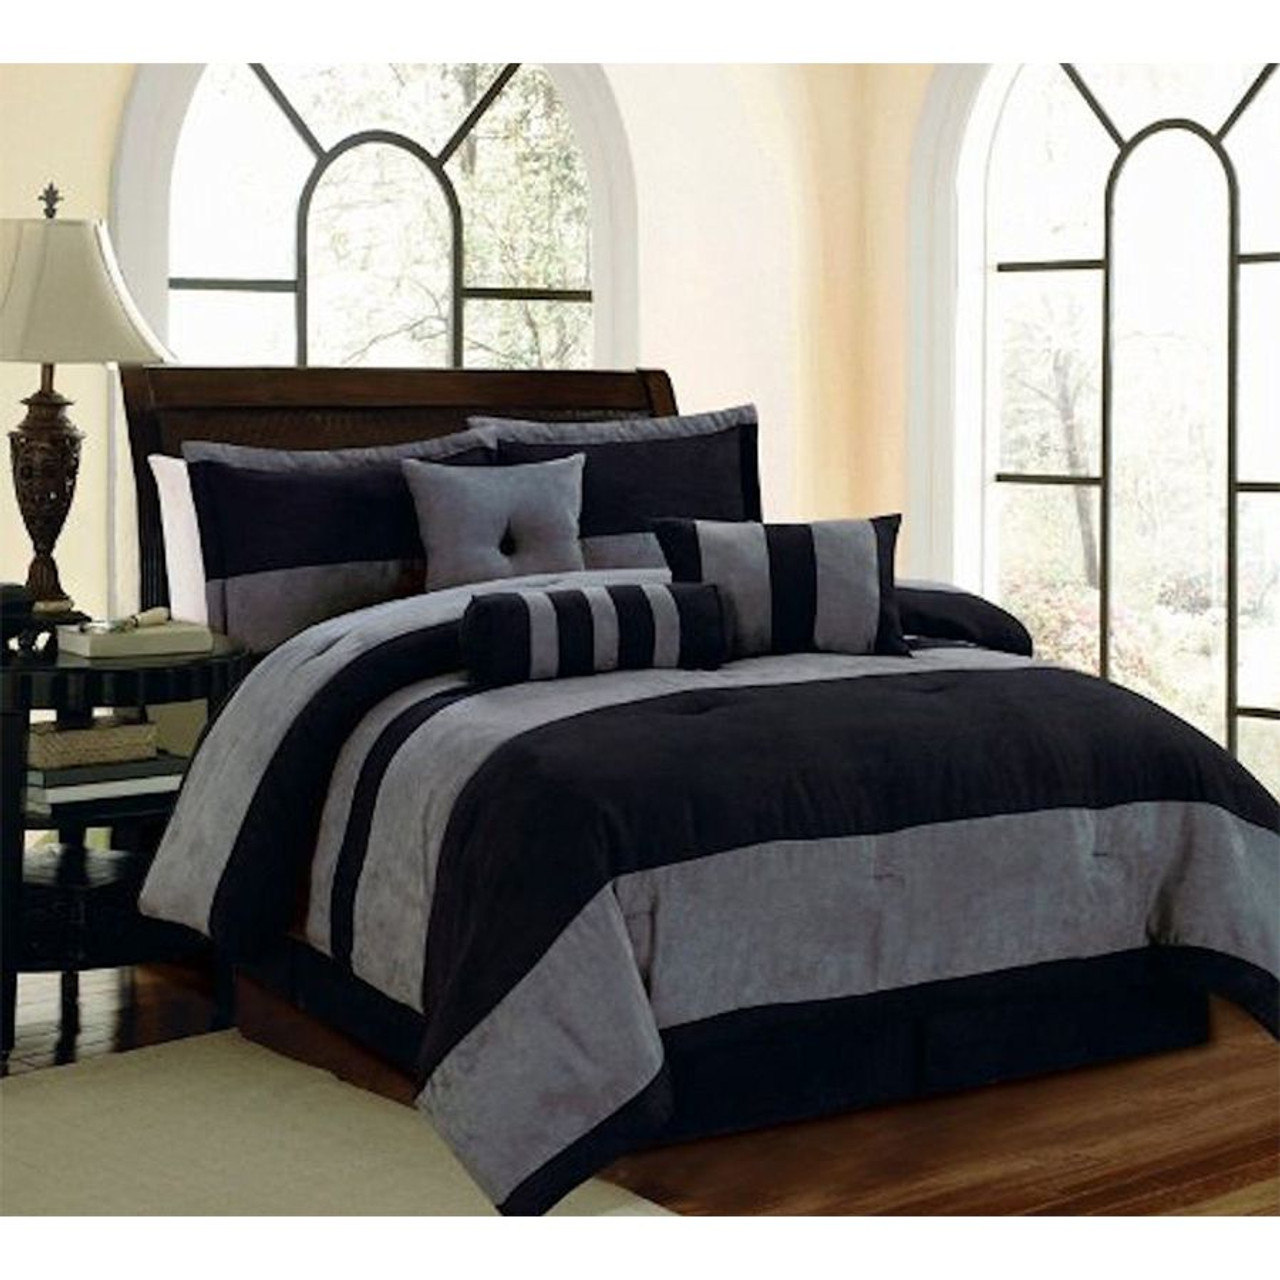 6 7 pc black and grey micro suede striped comforter set